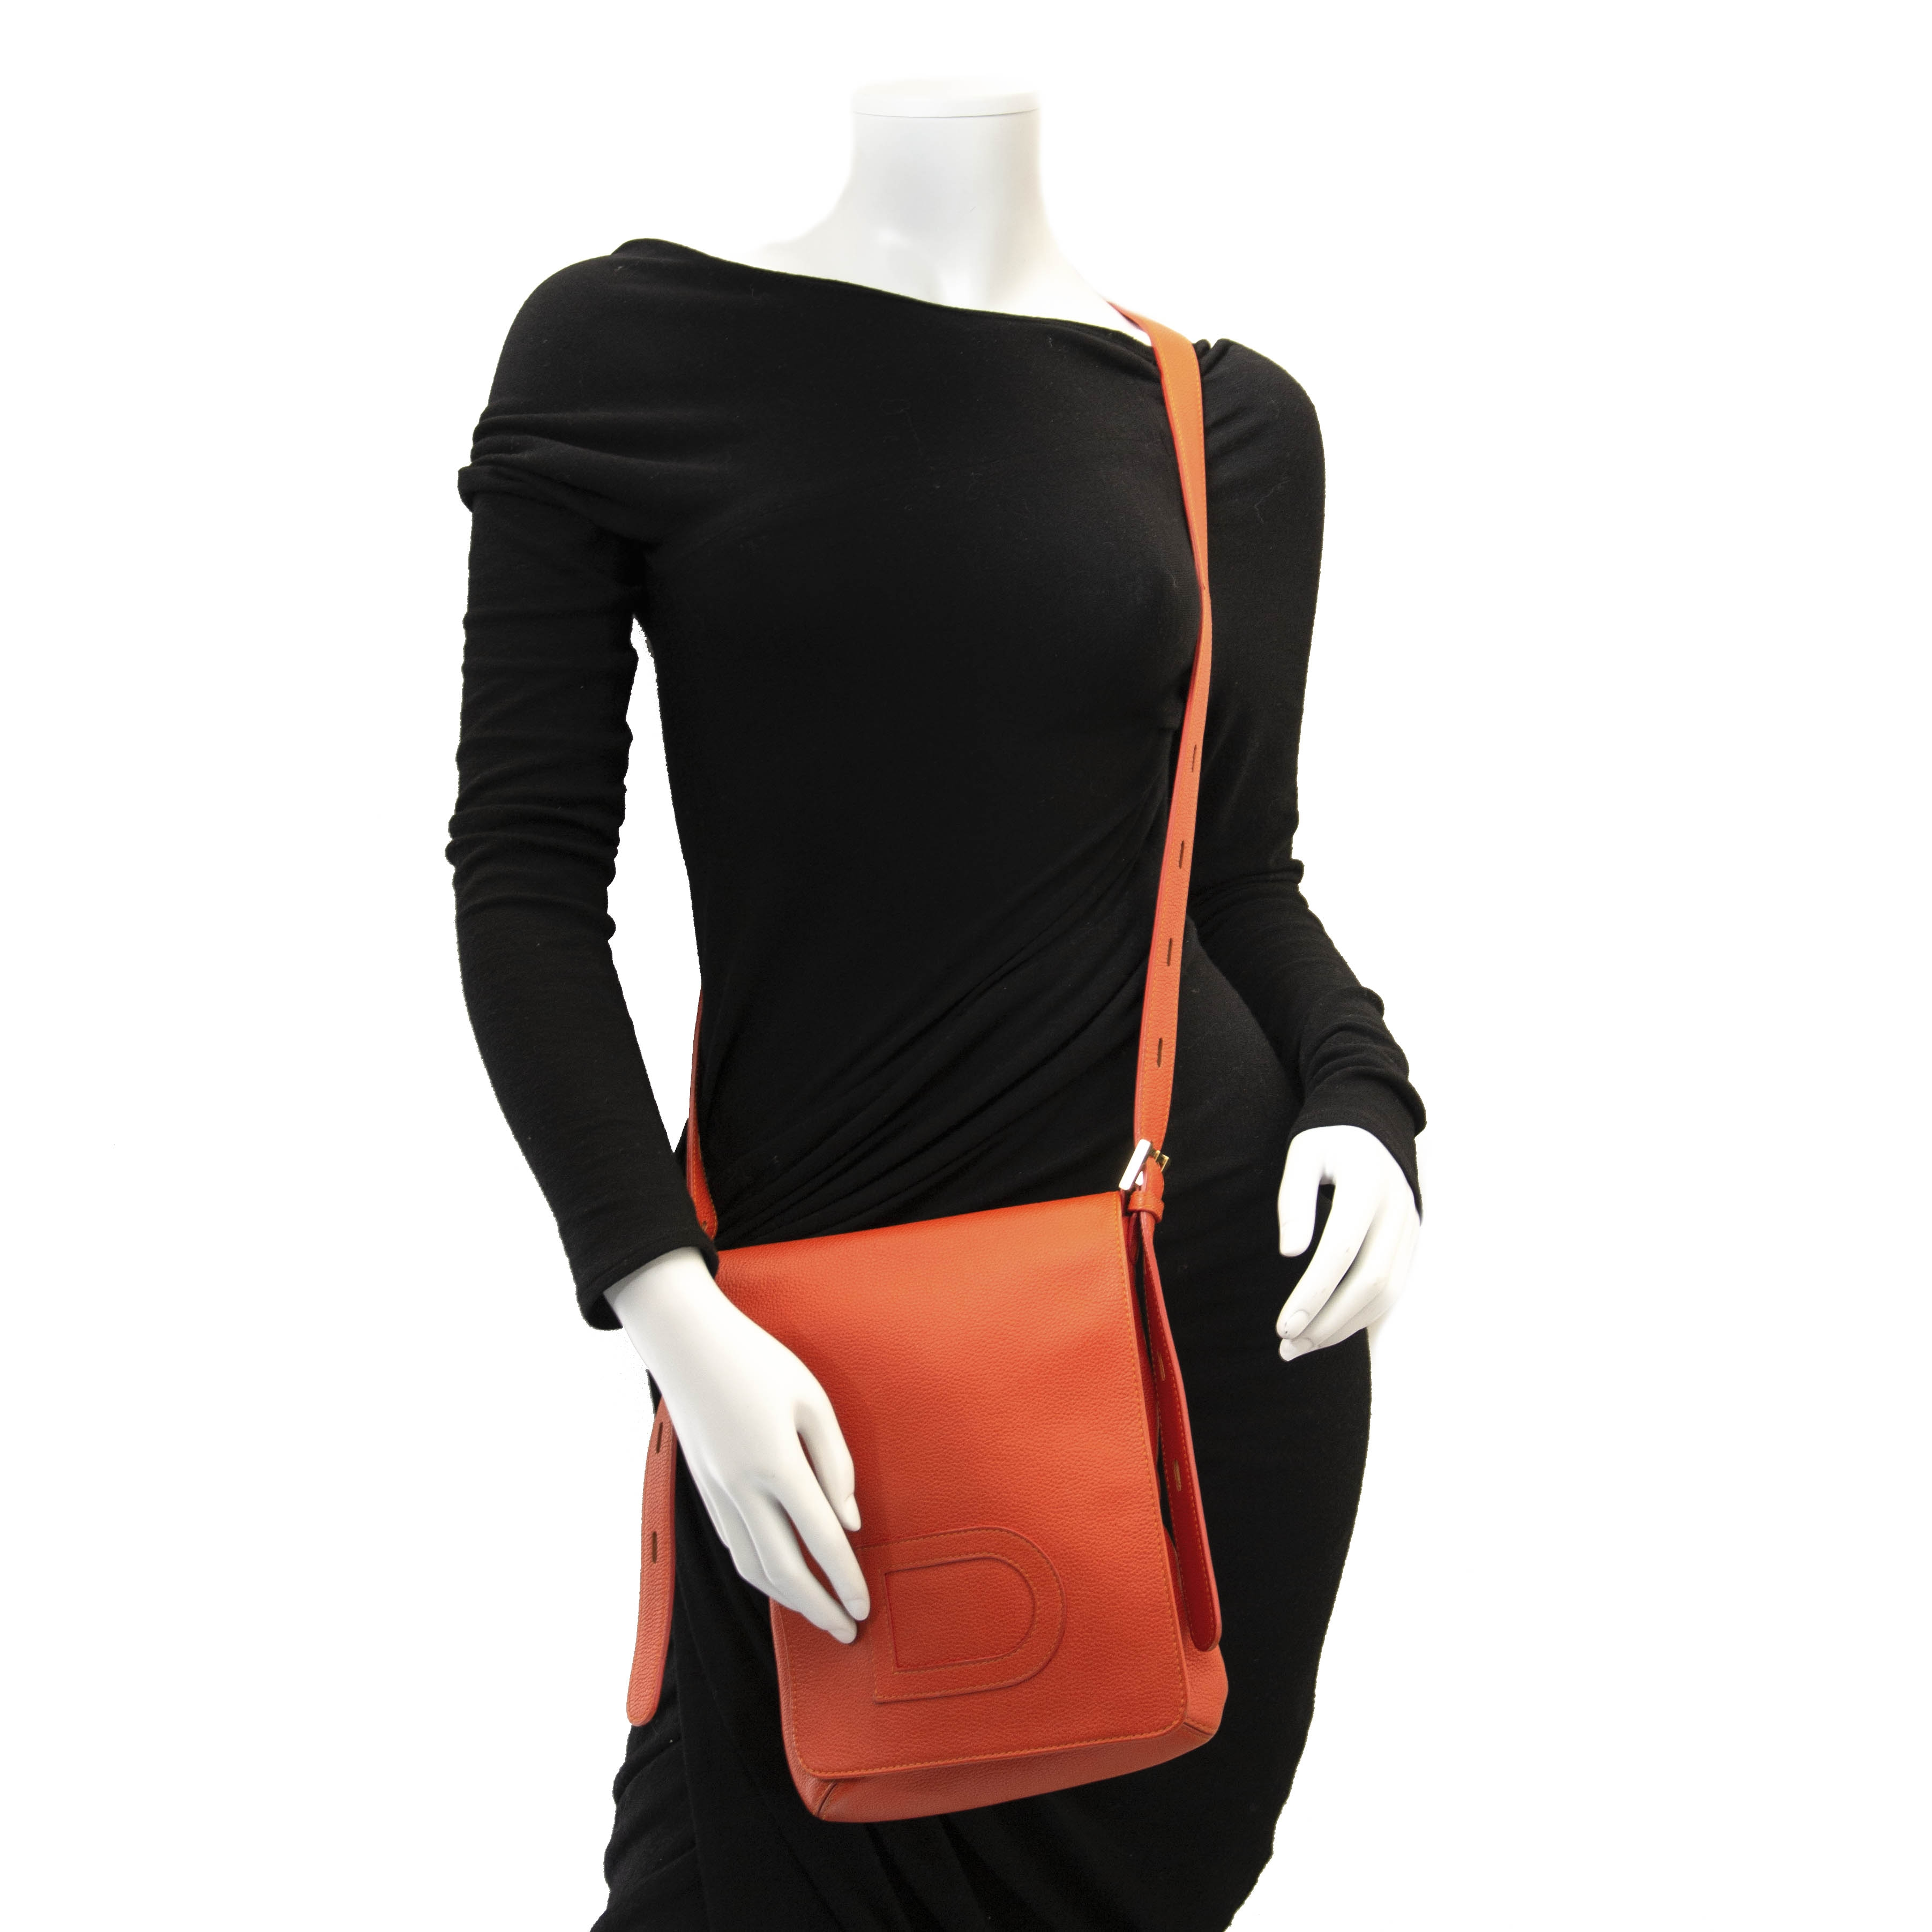 Delvaux Orange Louise Baudrier Cross Body Bag. Authentic secondhand delvaux louise baudrier bag orange leather. Right prices, safe online shopping at LabelLOV webshop. Luxury items, shopping in Antwerp. Fashion, Belgium.